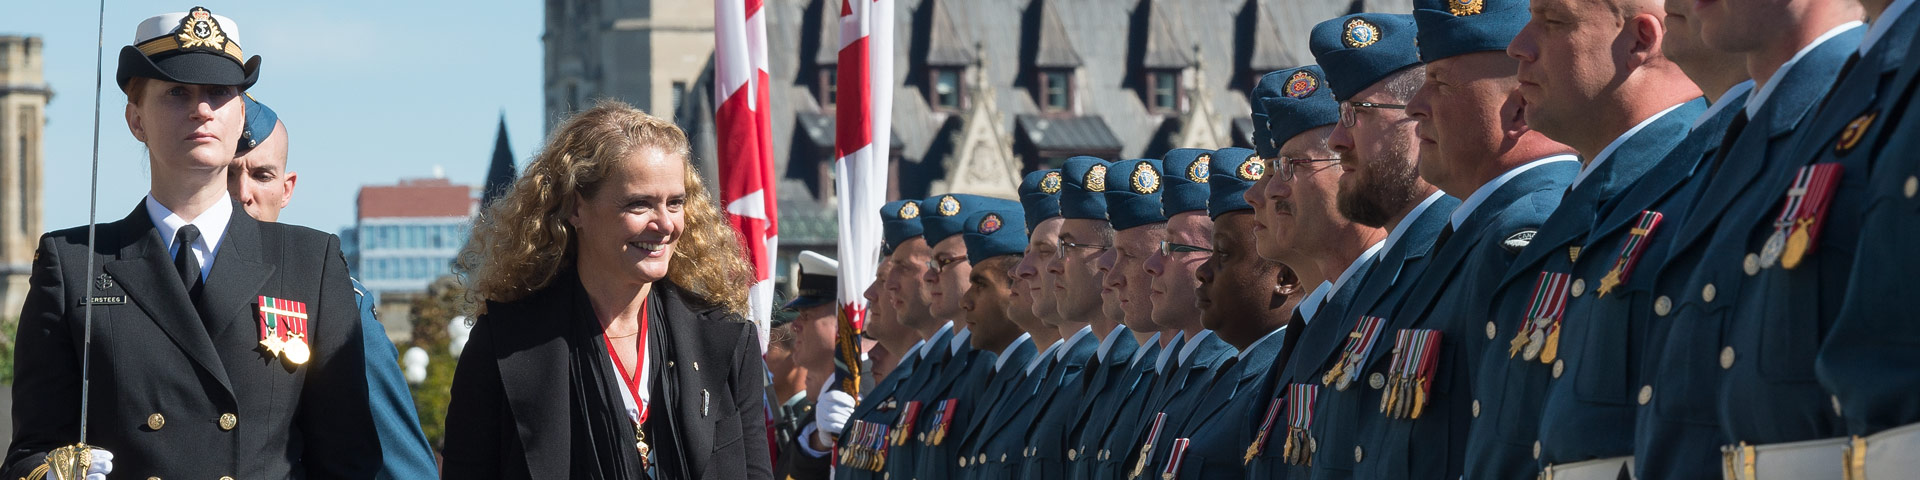 The Governor General of Canada Her Excellency the Right Honourable Julie Payette